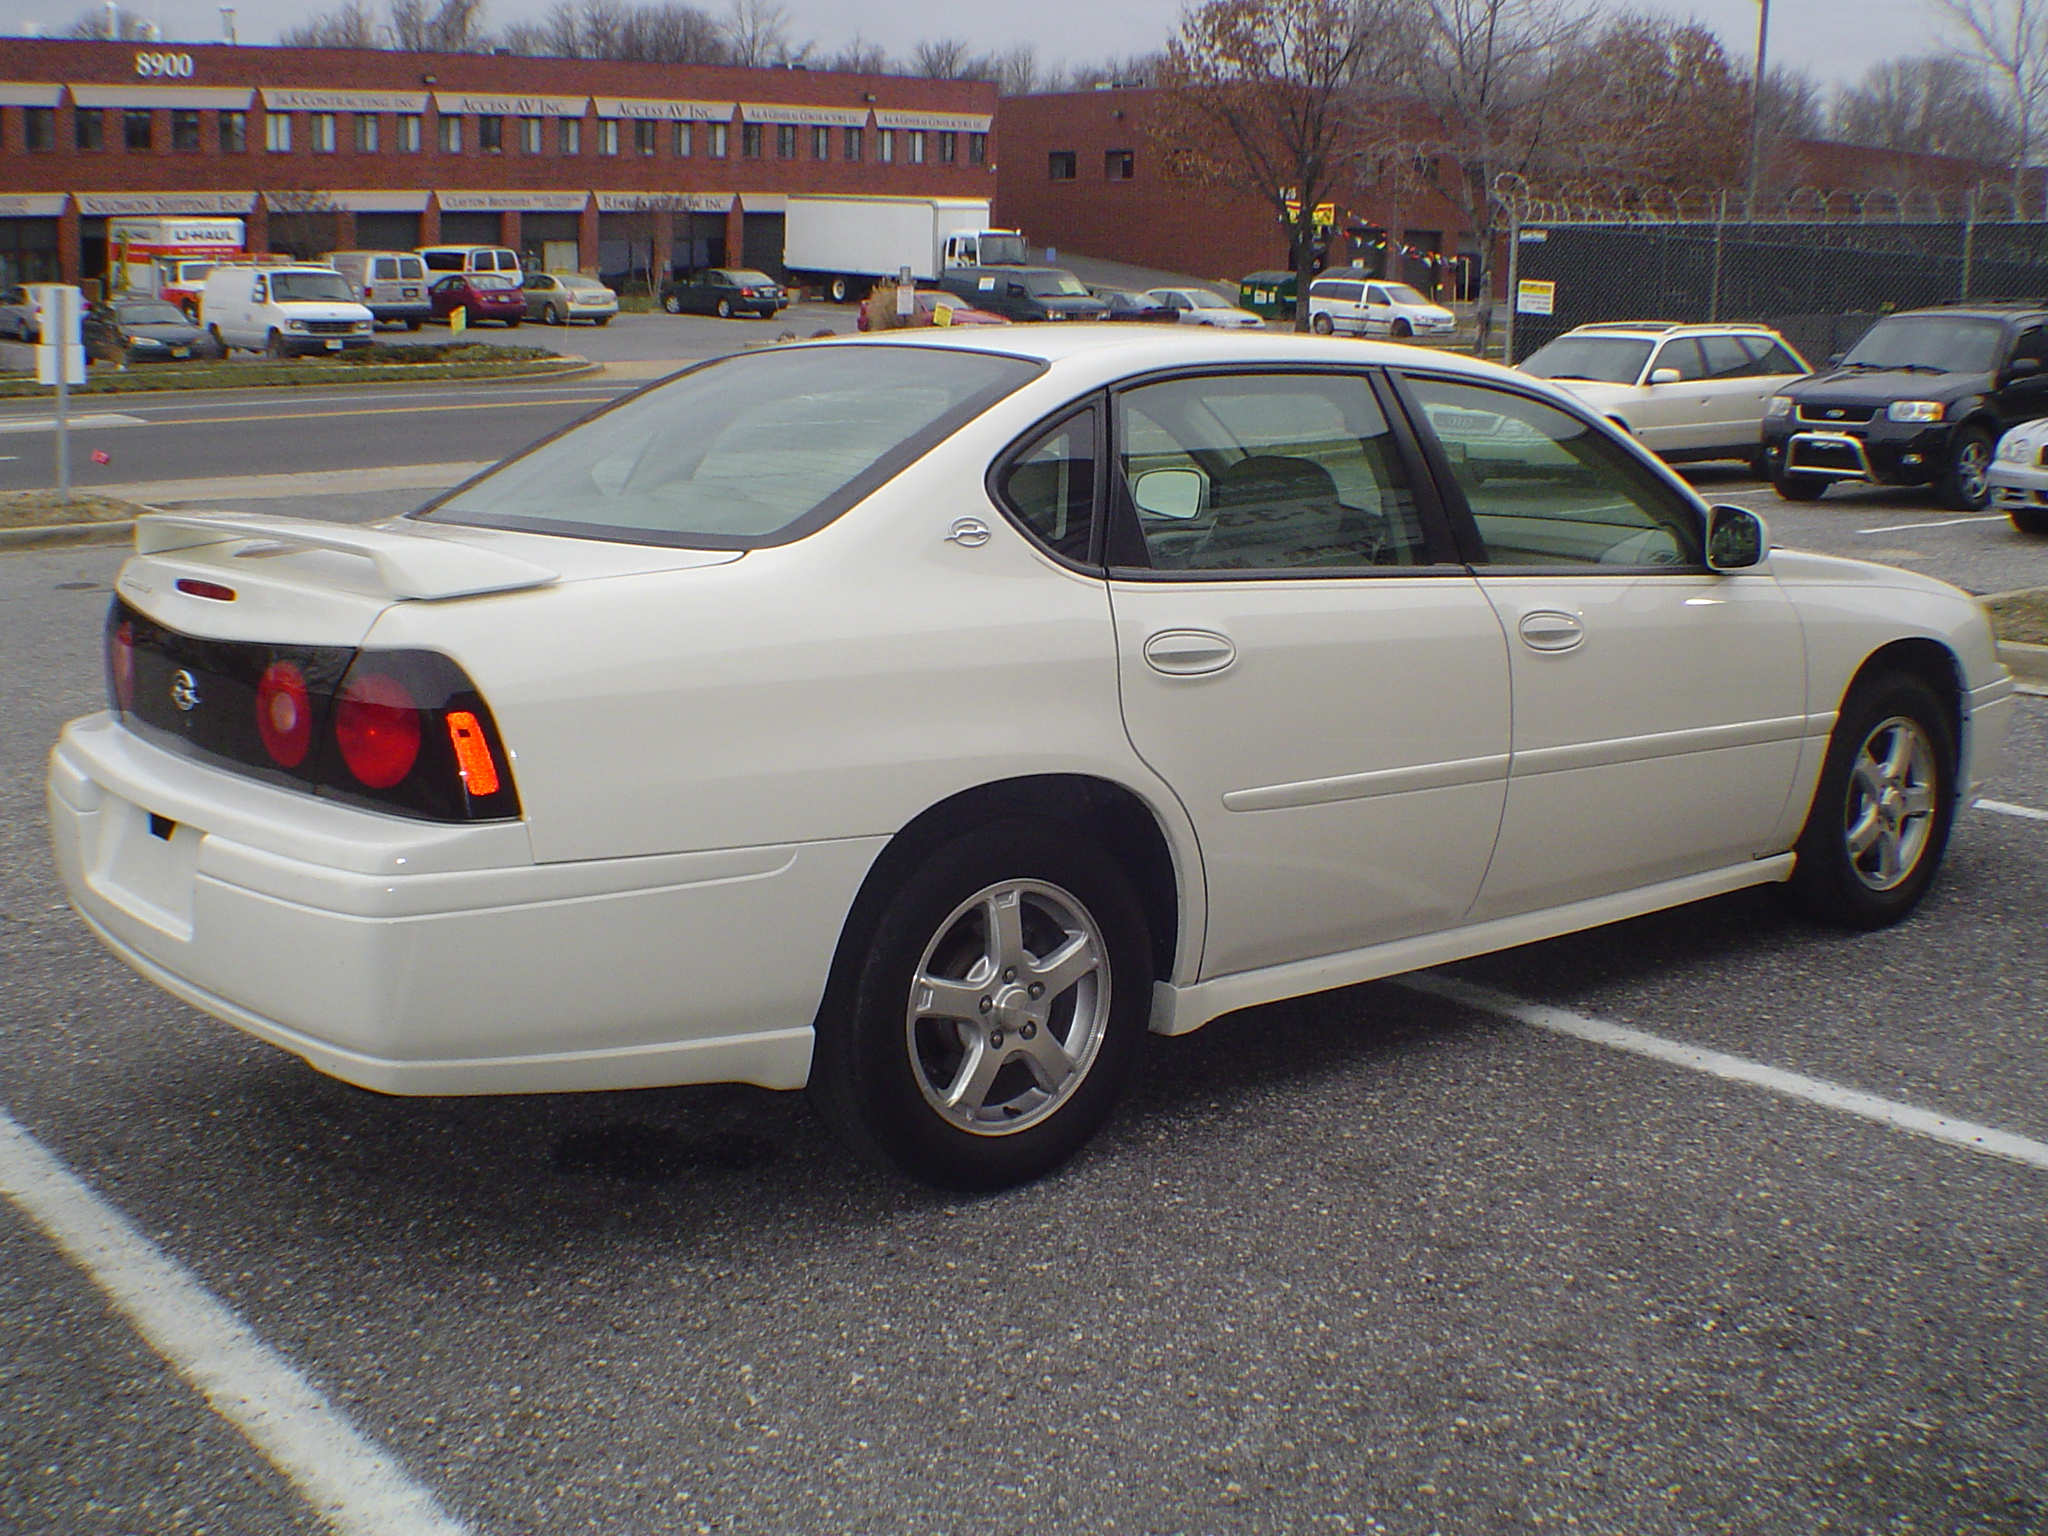 2005 Chevrolet Impala Base Vin Number Search